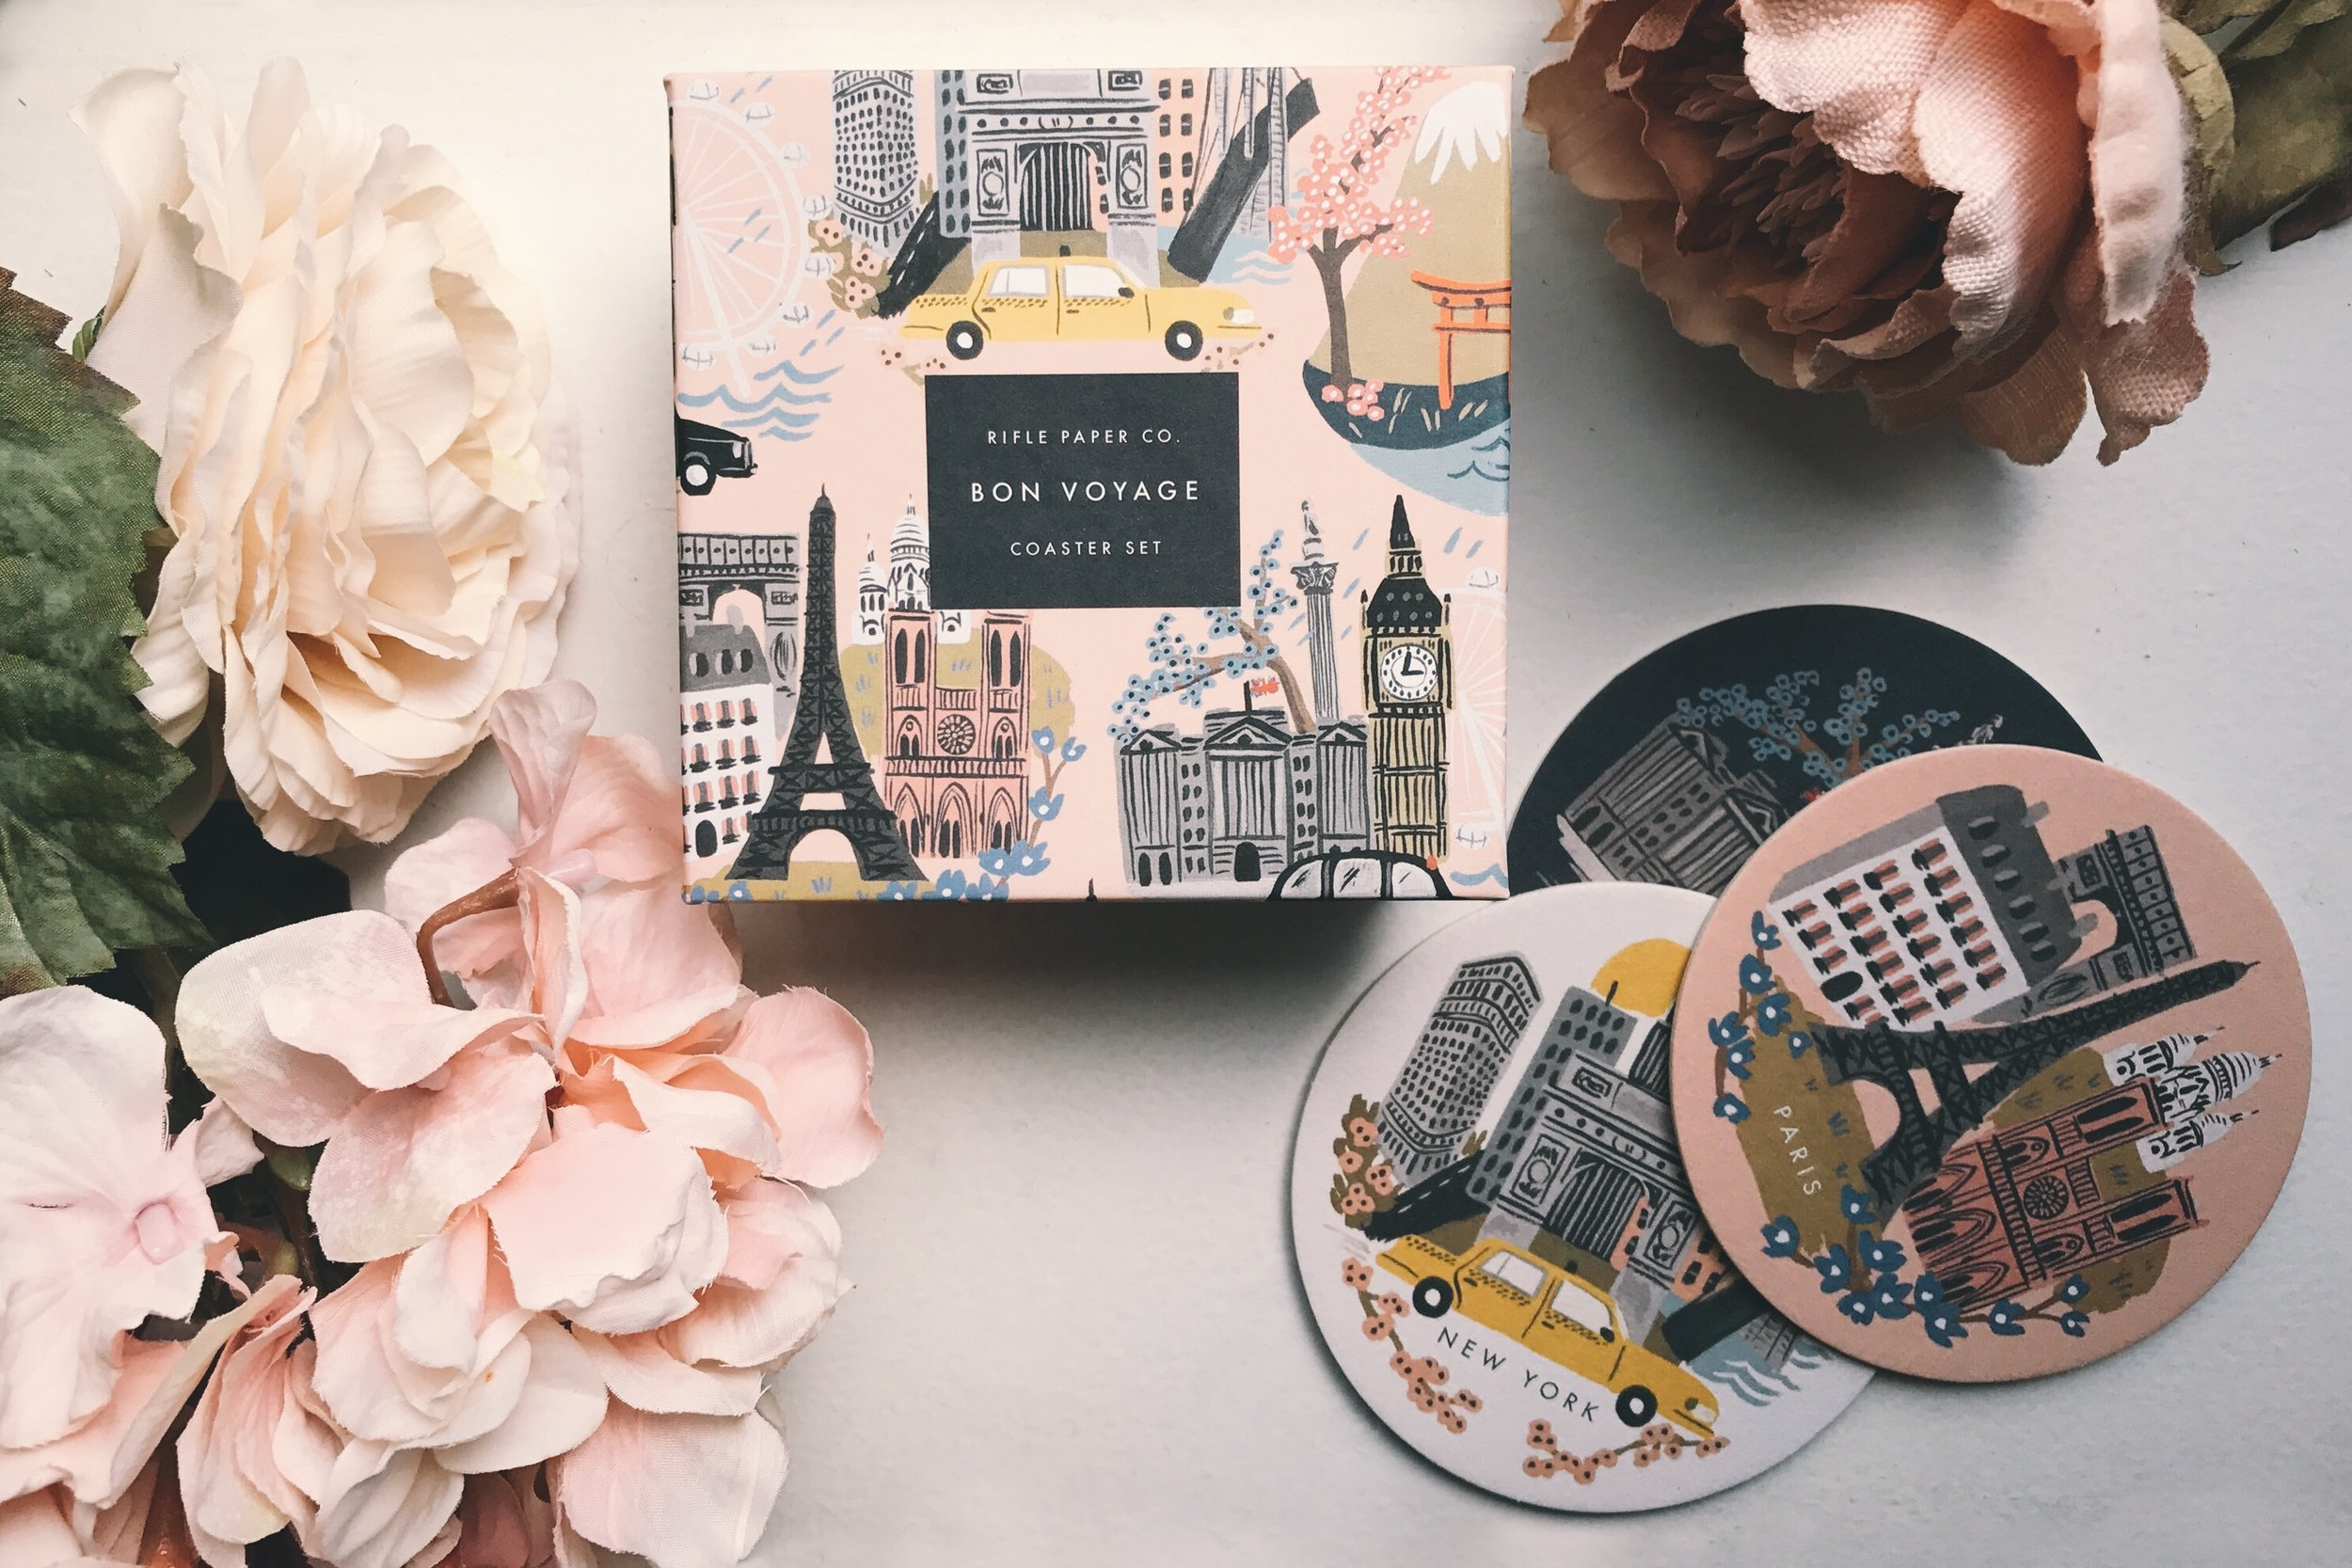 rifle paper co coasters at the qg